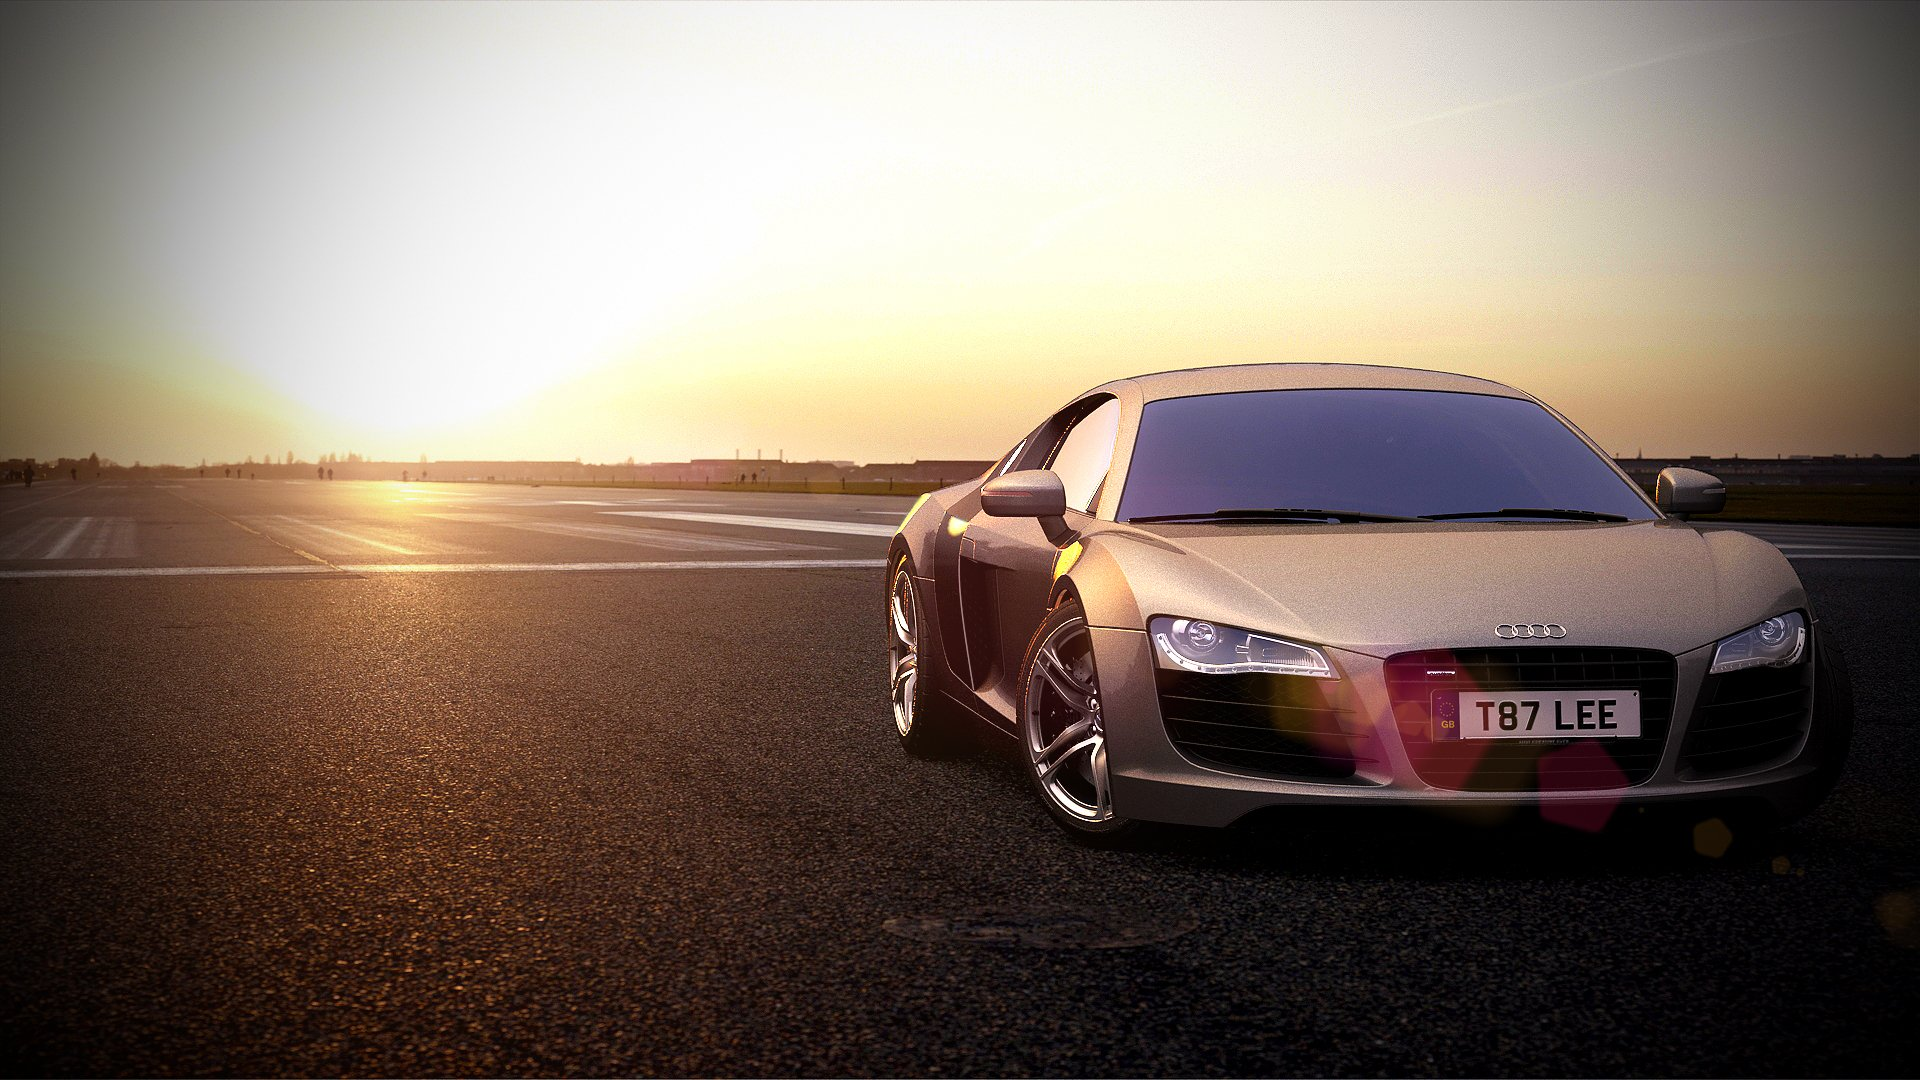 269 Audi R8 HD Wallpapers